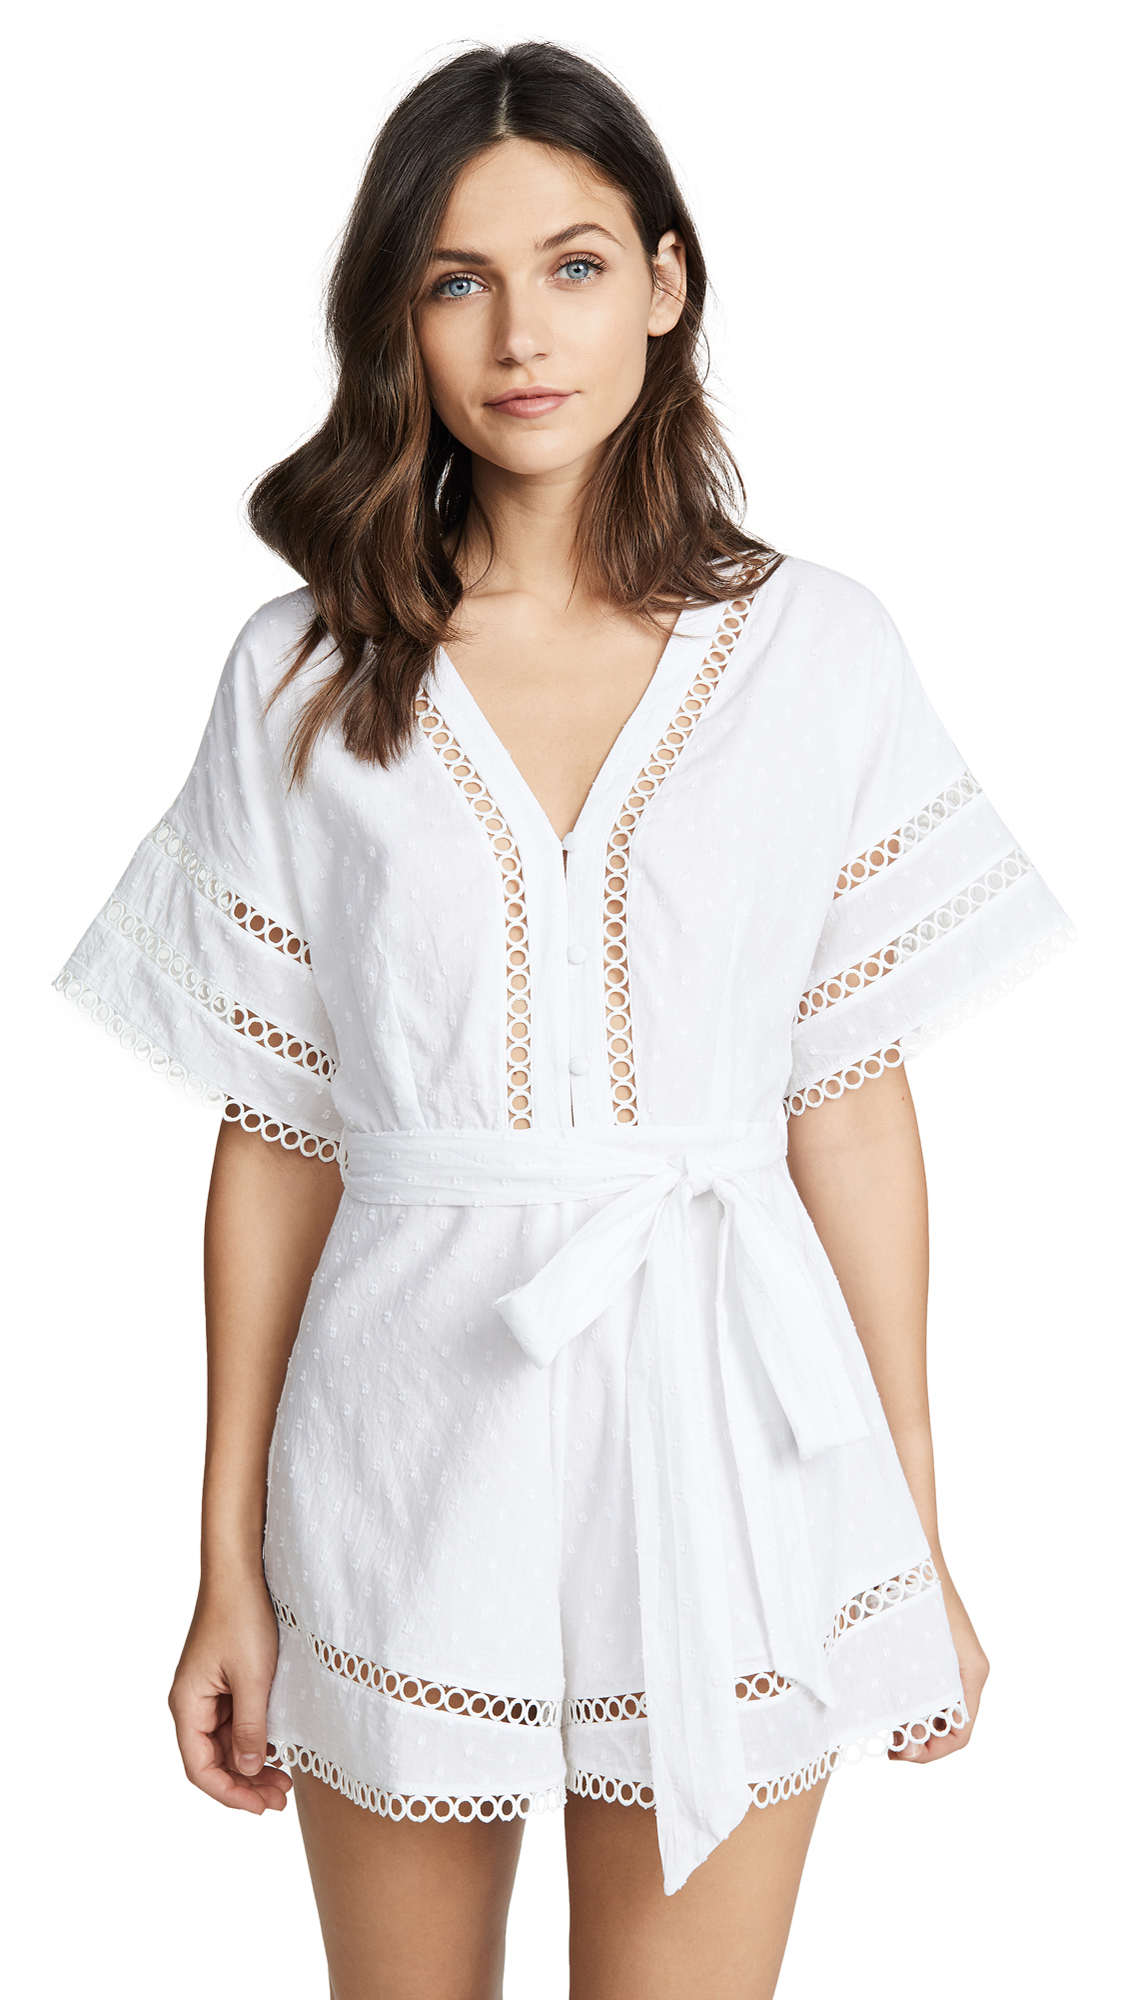 KOS RESORT SHORT SLEEVE ROMPER